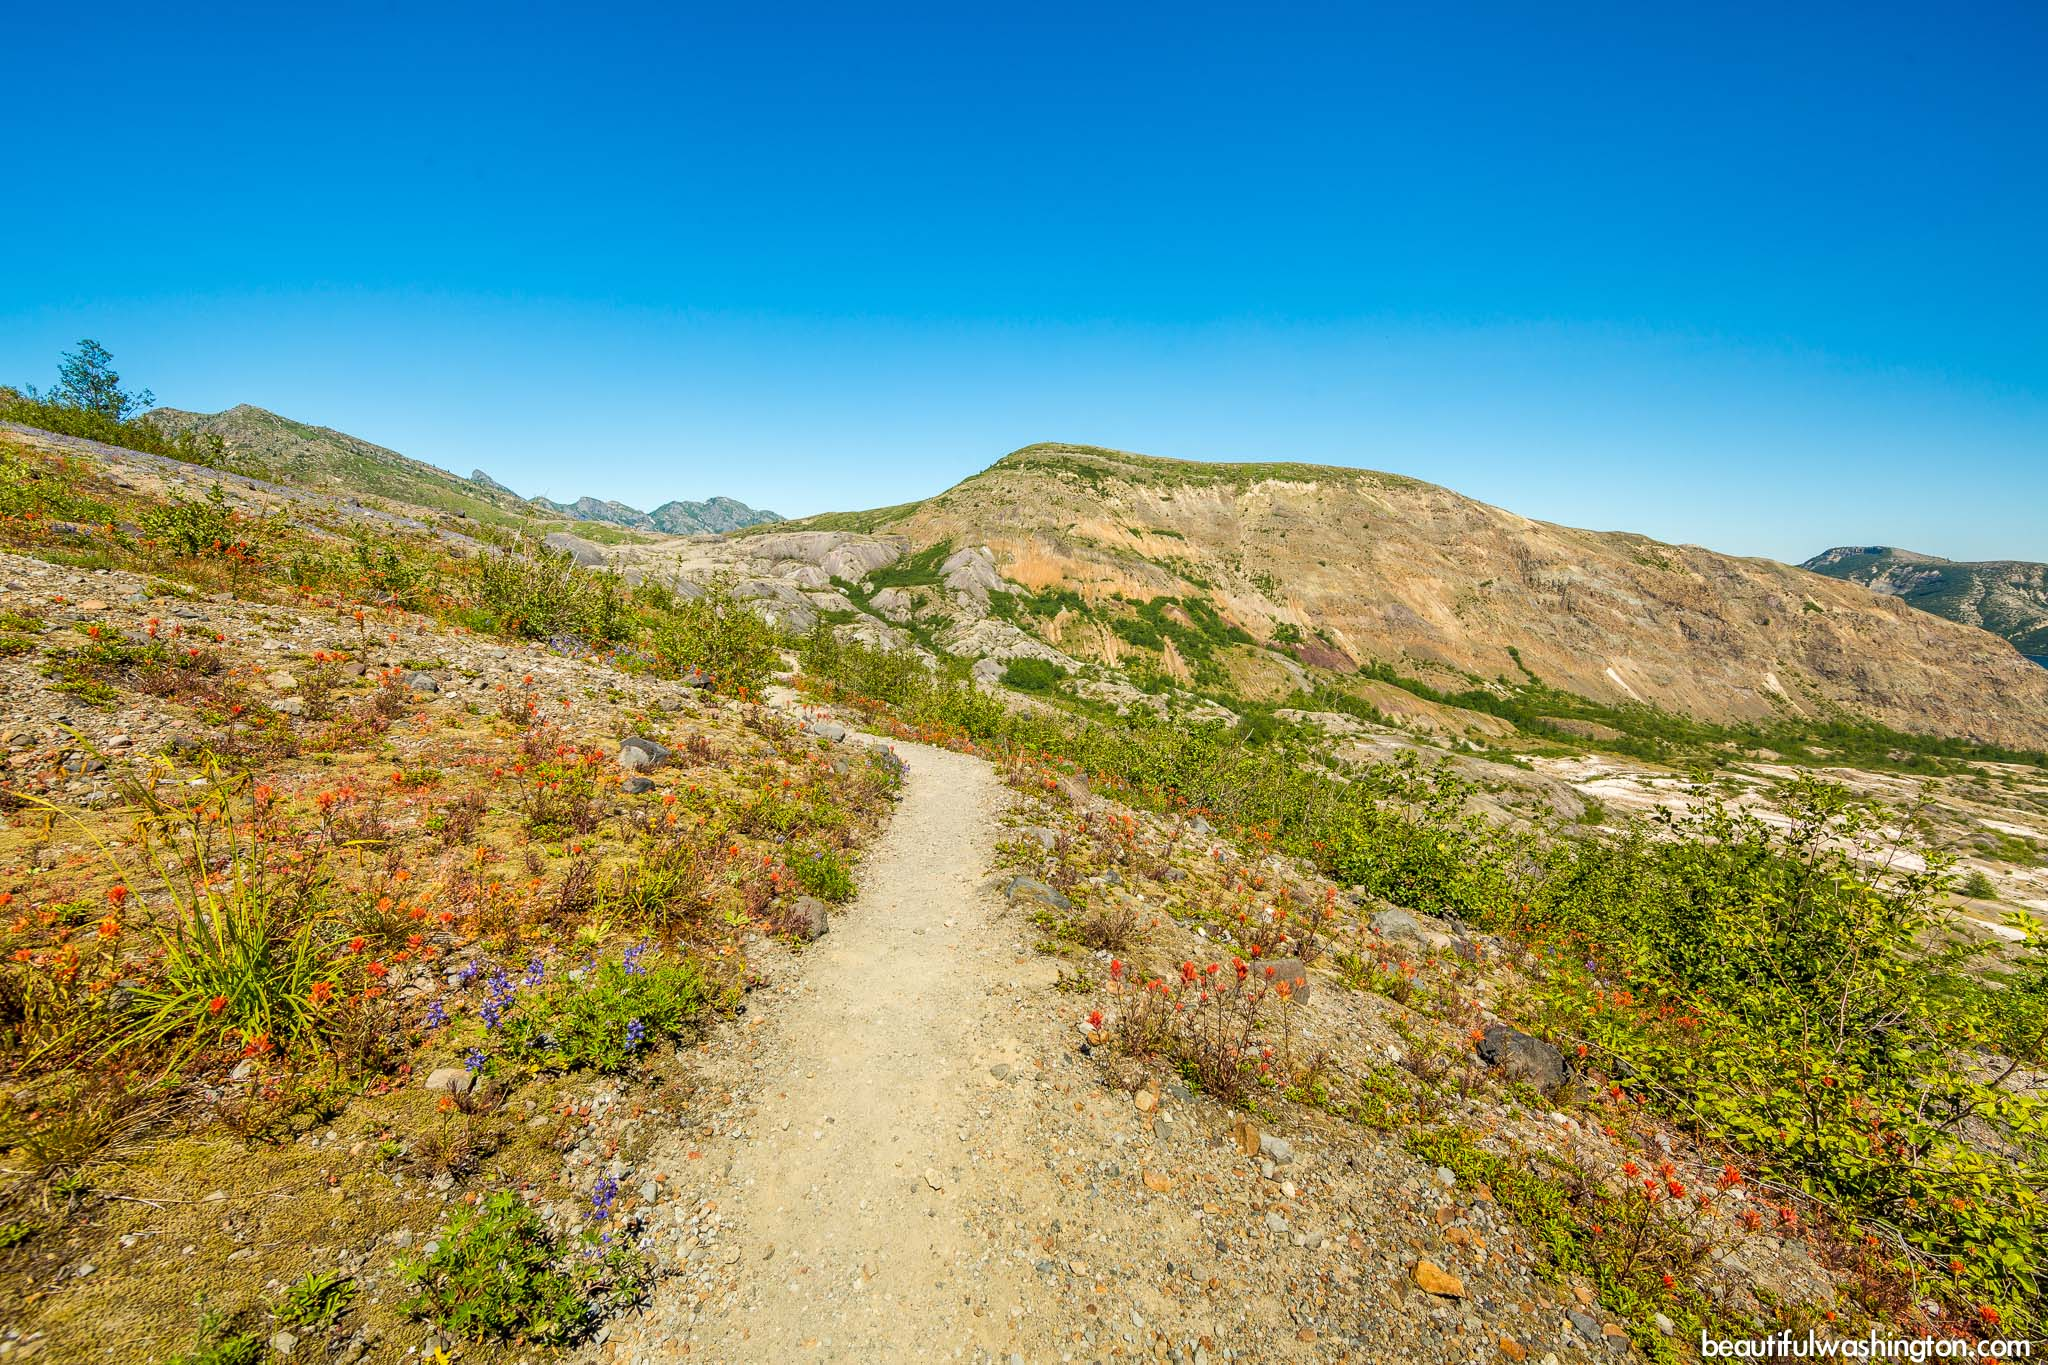 Photo from Mt. St. Helens Area, Harry's Ridge Trail